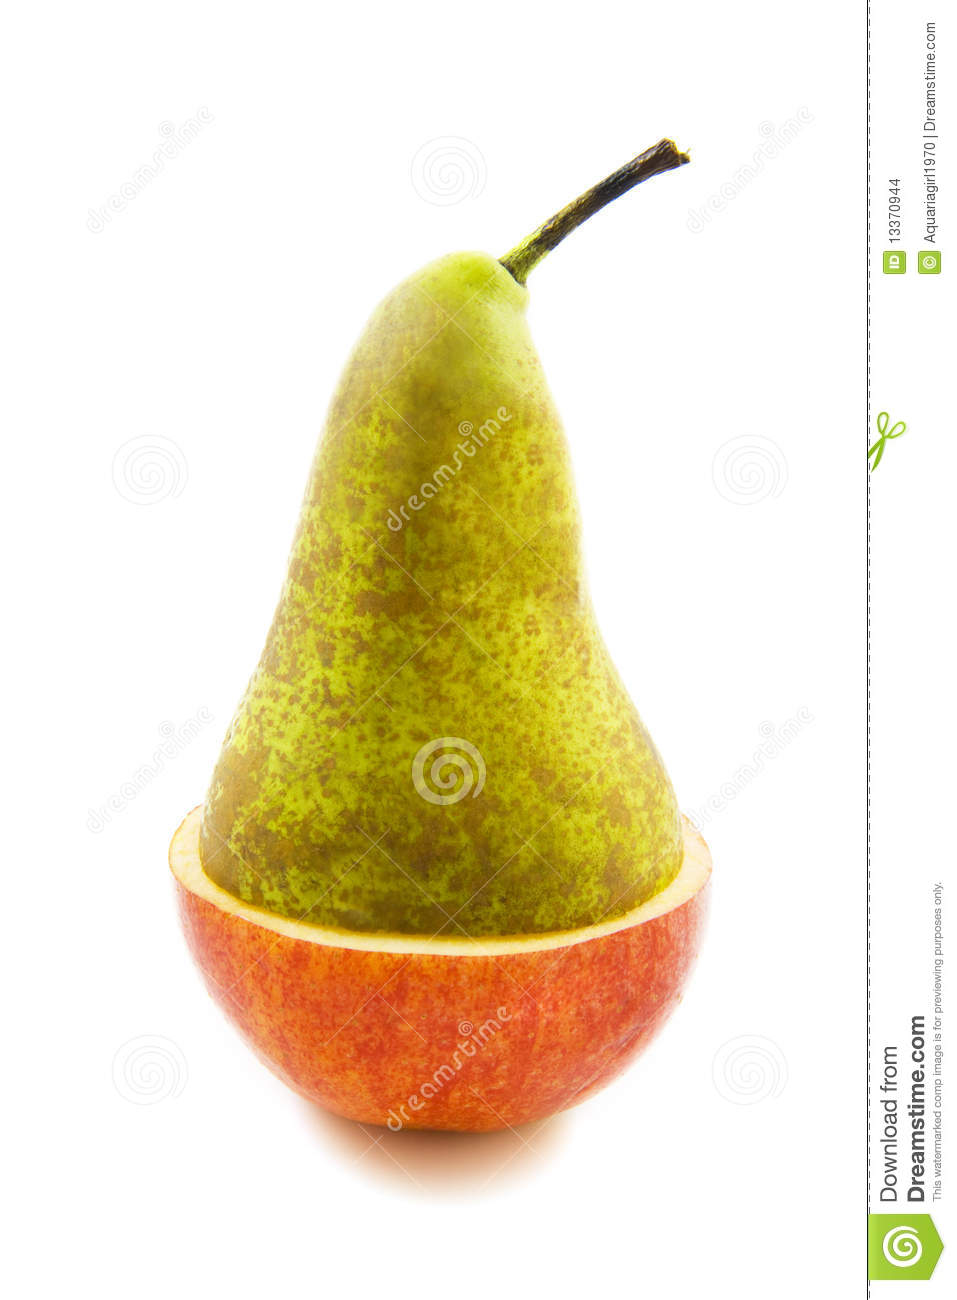 More similar stock images of ` Fresh apple pear `